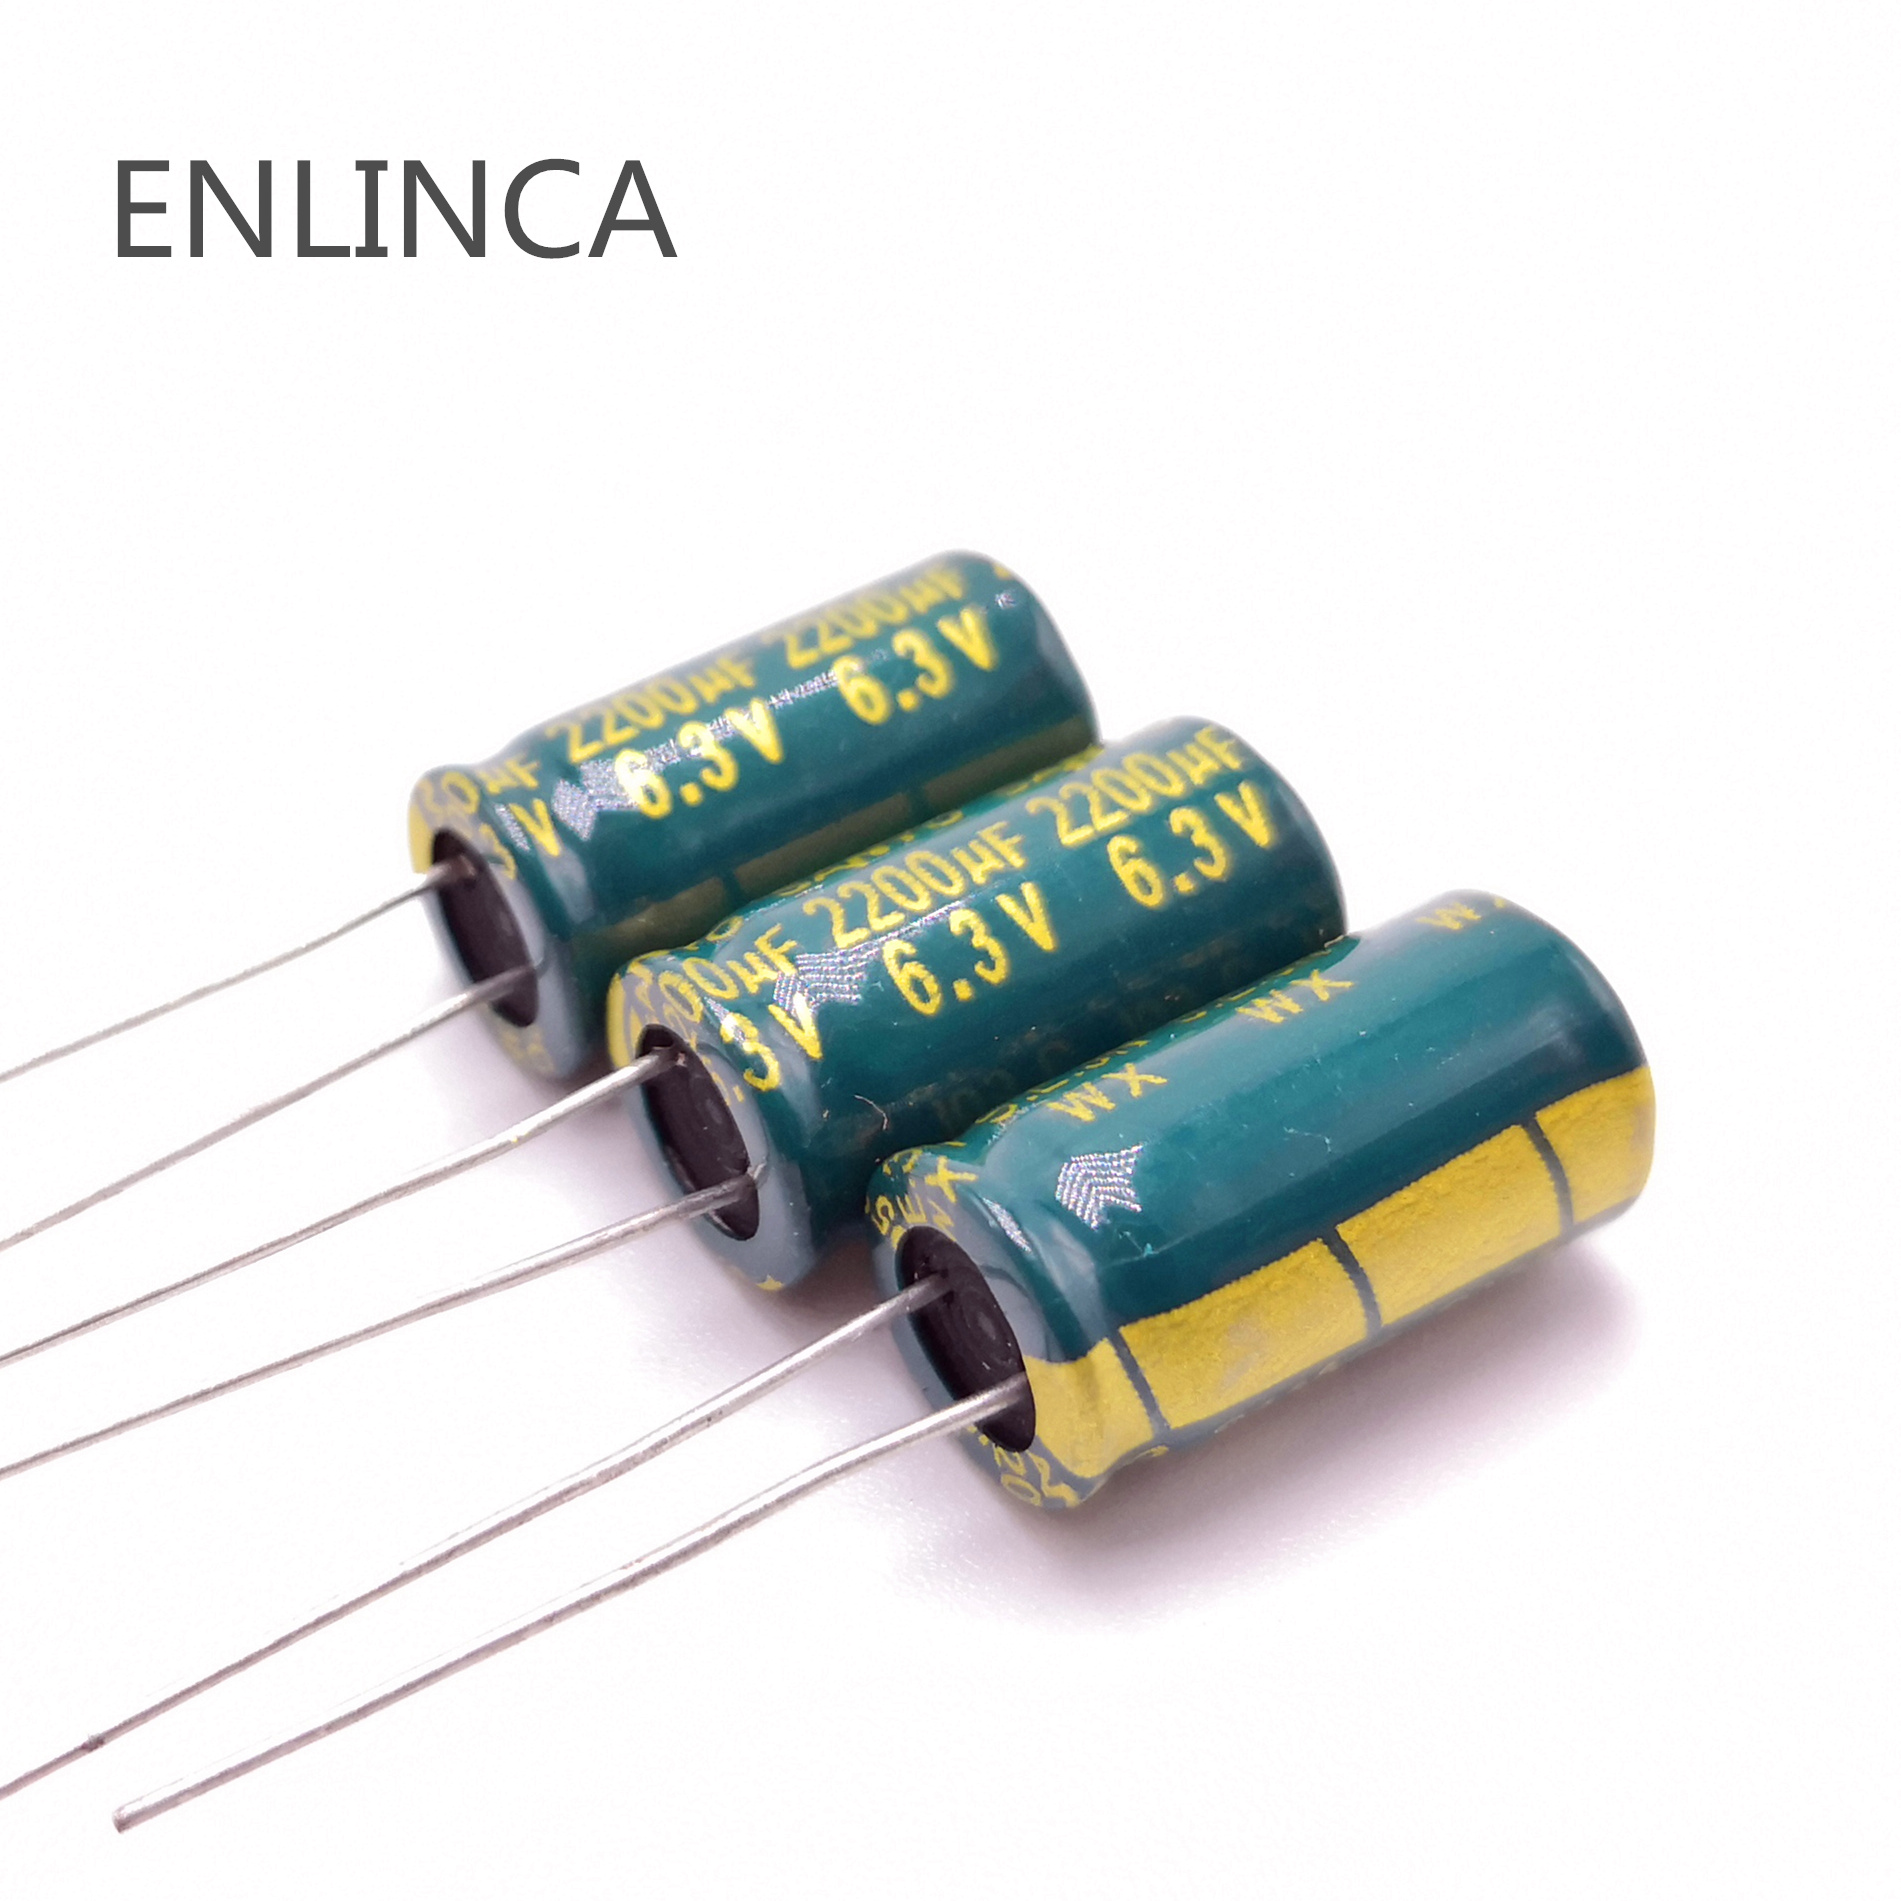 5pcs/lot 6.3v 2200UF 10*16 Low ESR / Impedance High Frequency Aluminum Electrolytic Capacitor 2200UF 6.3v  10*16 6.3v  2200UF